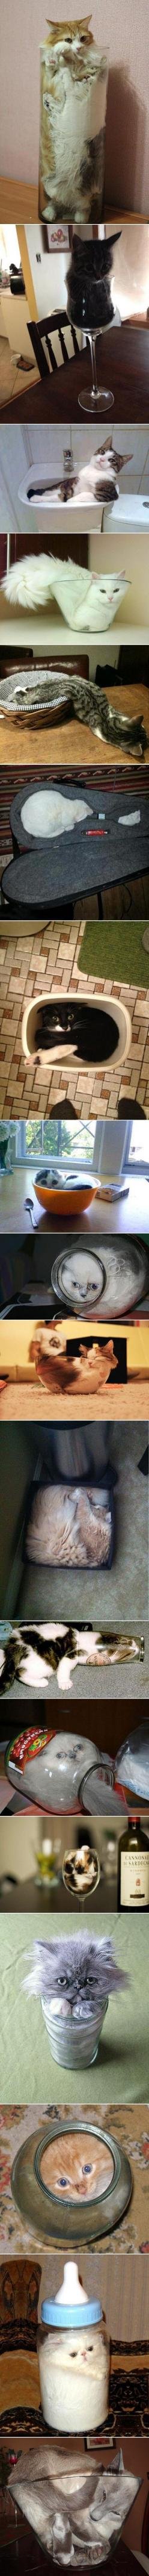 why cats? WHY?: Kitty Cats, Funny Cats, Container, Proof Cats, Crazy Cat, Liquid Cats, Animal, Cat Lady